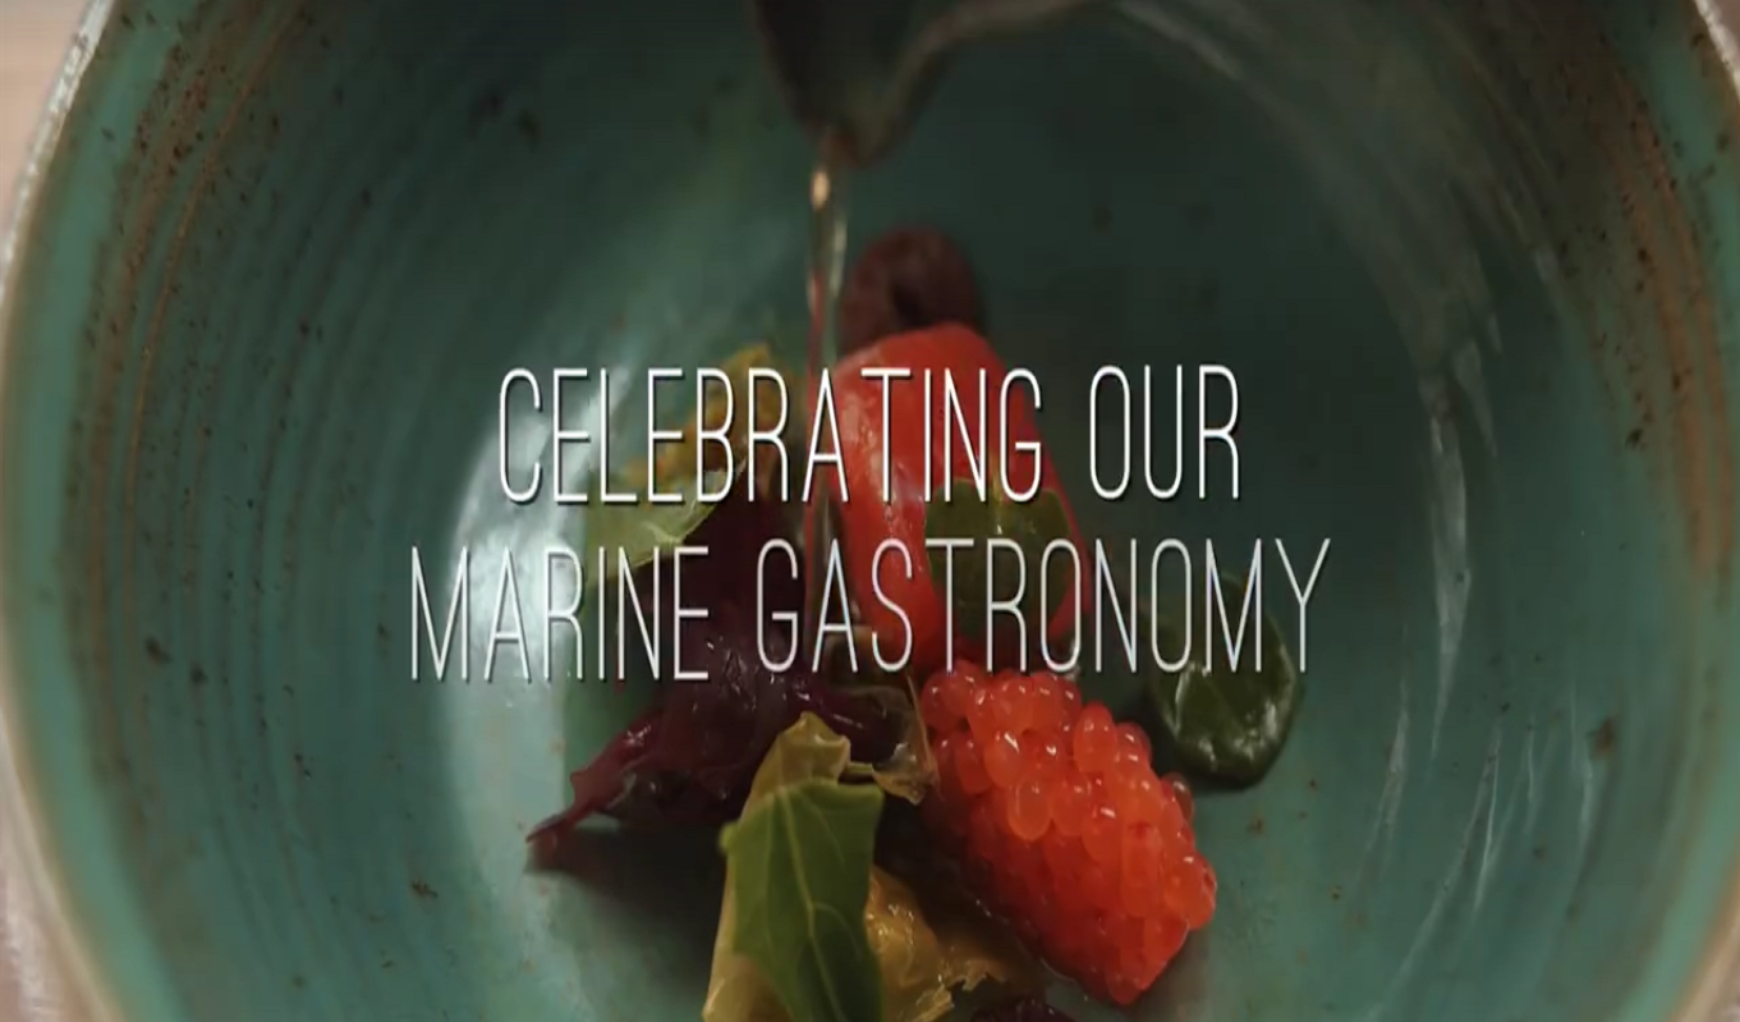 Sea Gastronomy at the Ocean Wealth Summit in Galway